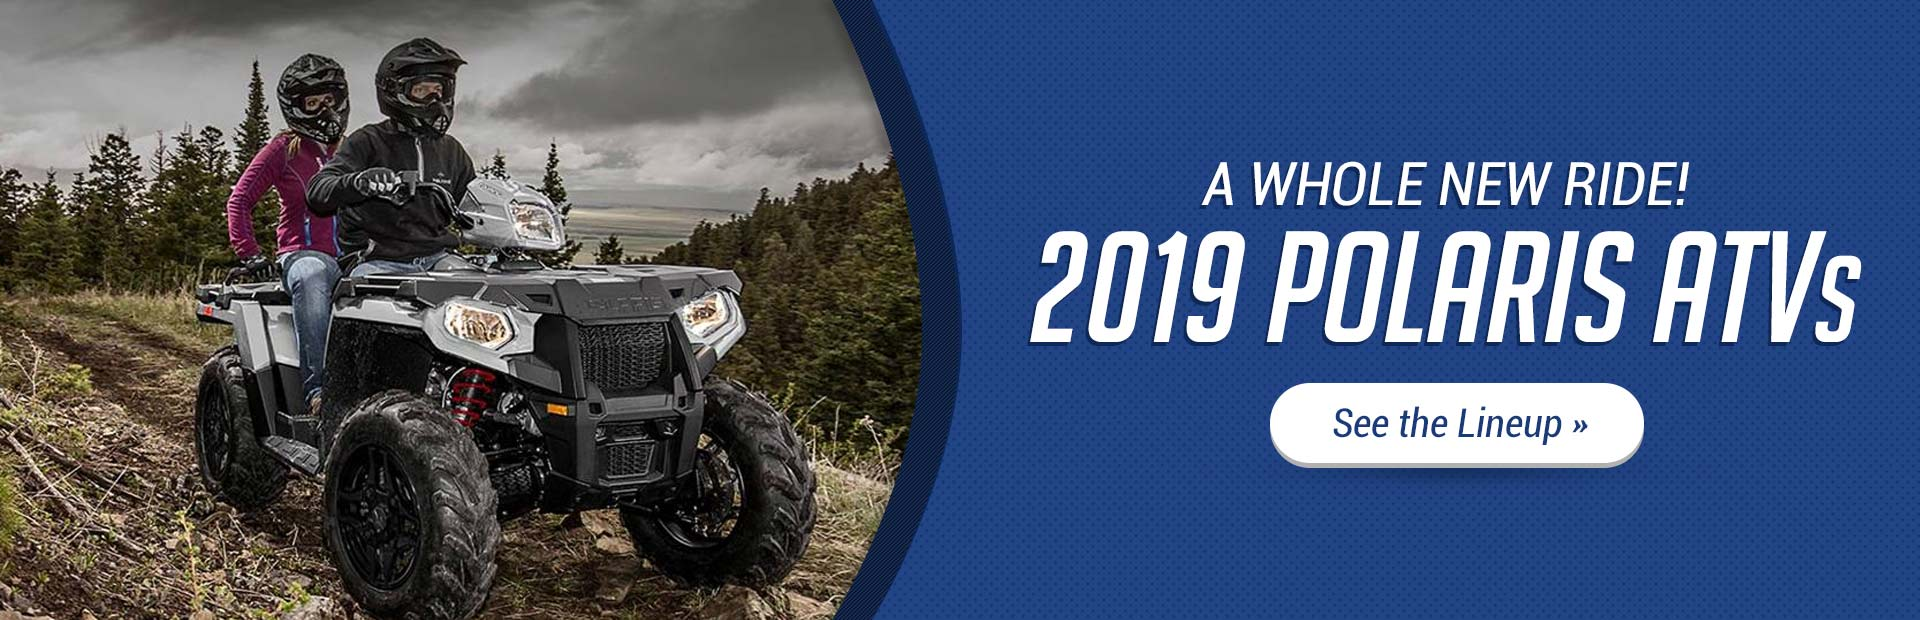 2019 Polaris ATVs: Click here to view the models.